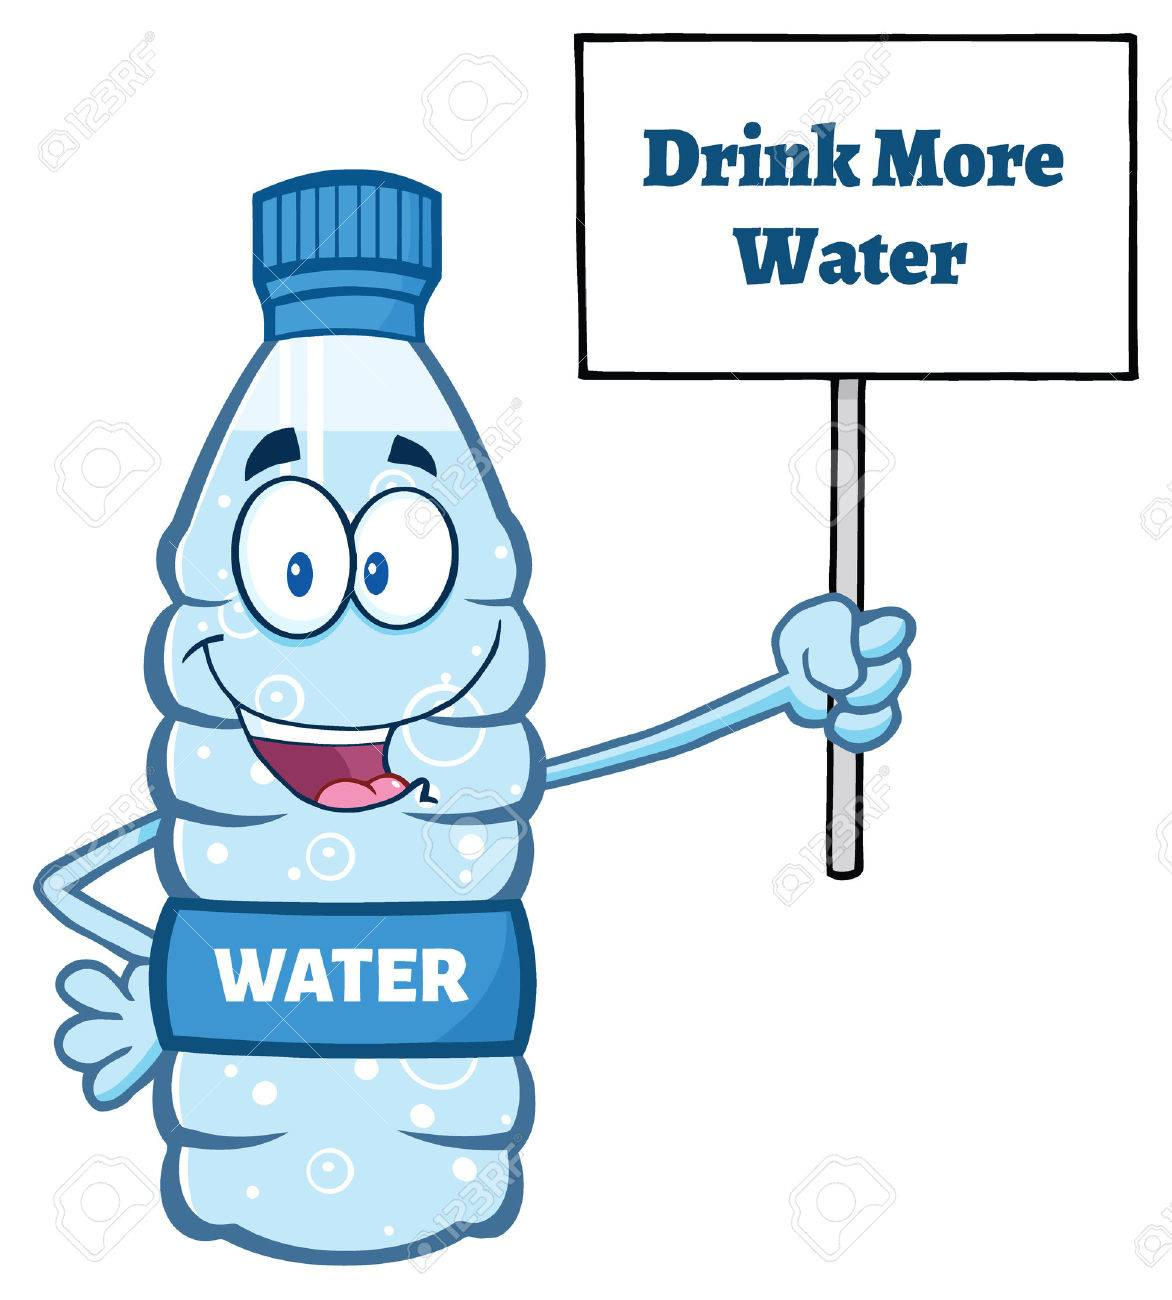 Cartoon Illustation Of A Water Plastic Bottle Mascot Character Holding Up A Sign With Text Drink More Water - 58231680